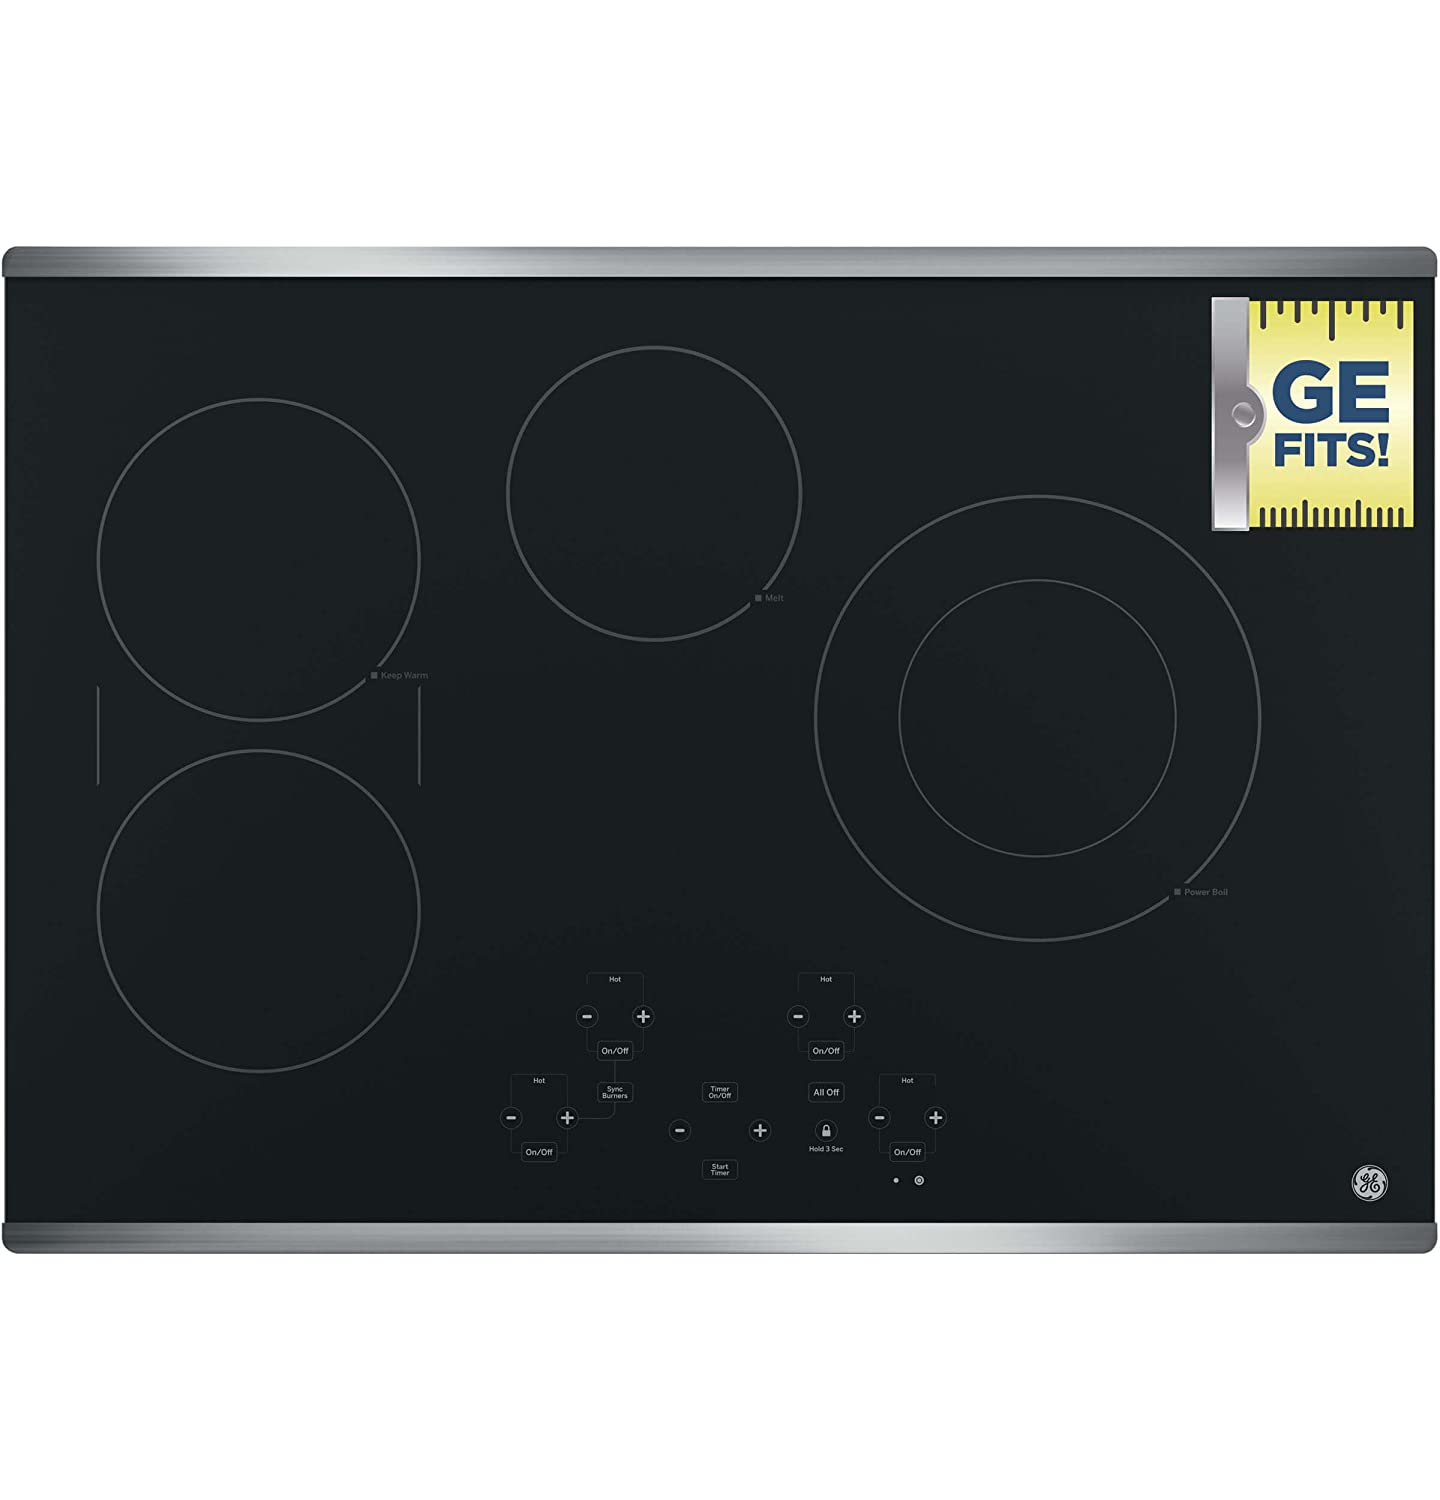 ADA Compliant Fits Guarantee 4 Radiant Elements Keep Warm Built-in Timer Digital Touch Controls GE JP5030SJSS 30 Inch Smoothtop Electric Cooktop with SyncBurner Melt Setting